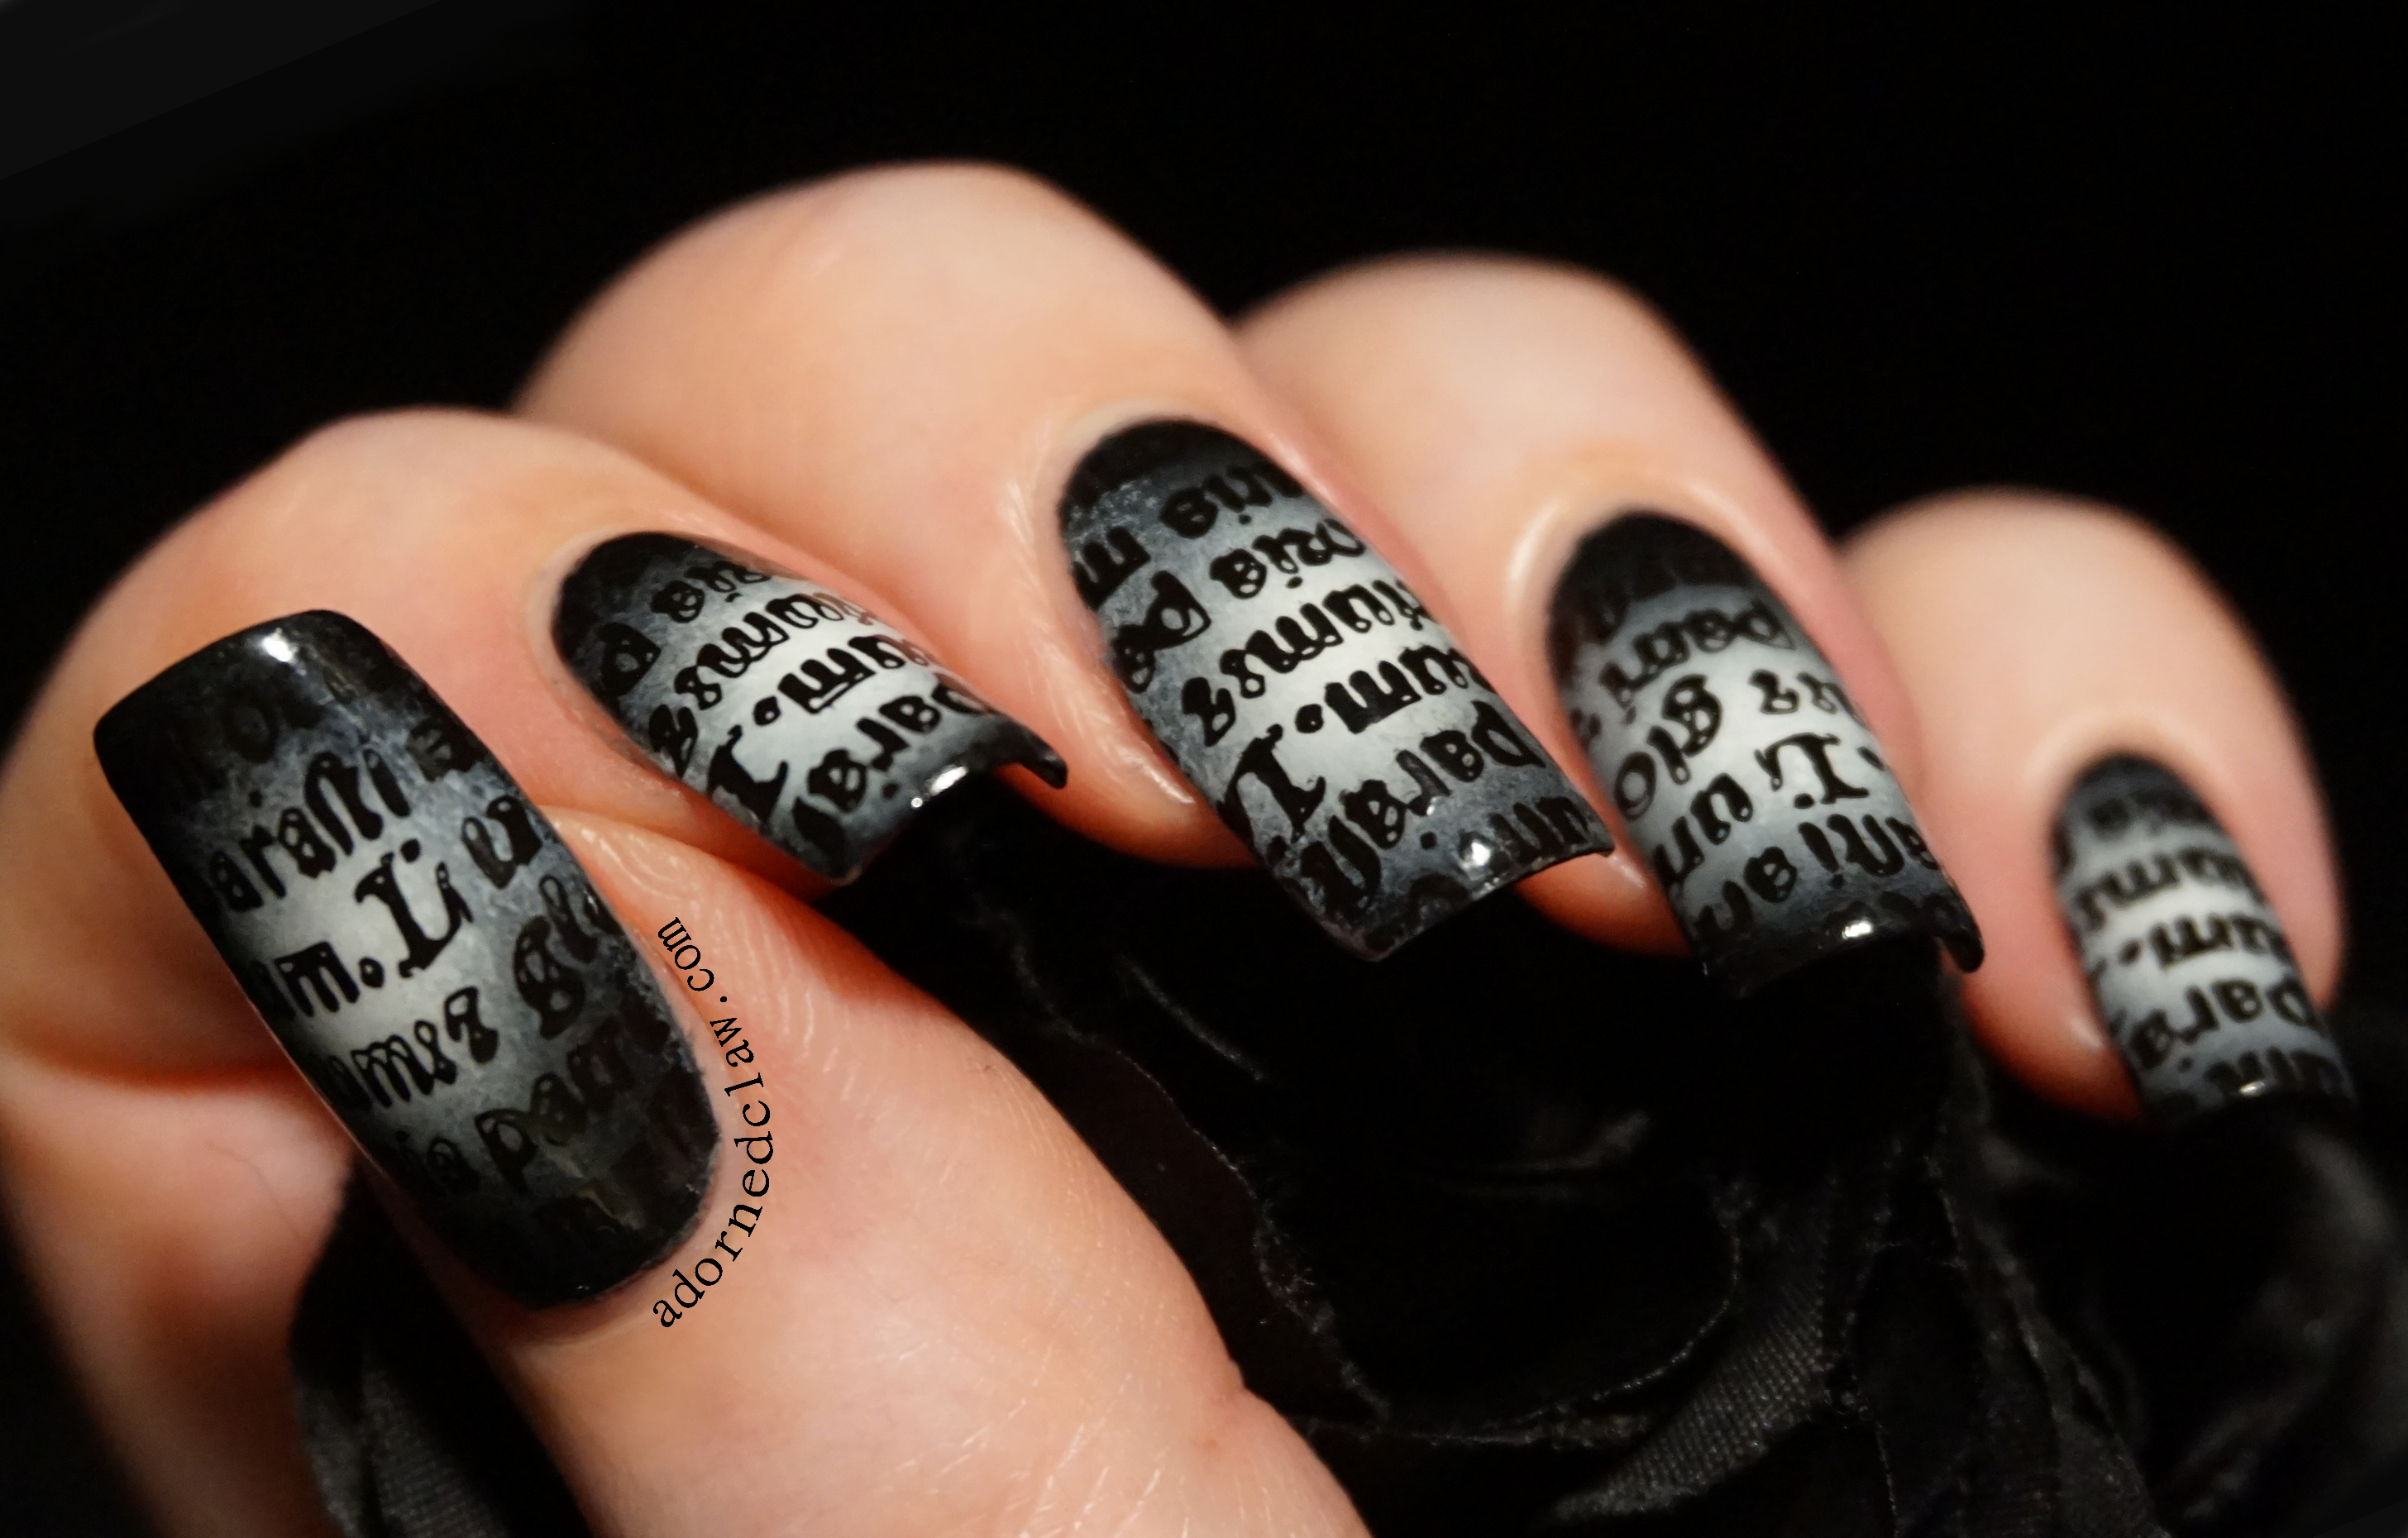 Gothic Text Nail Art | The Adorned Claw